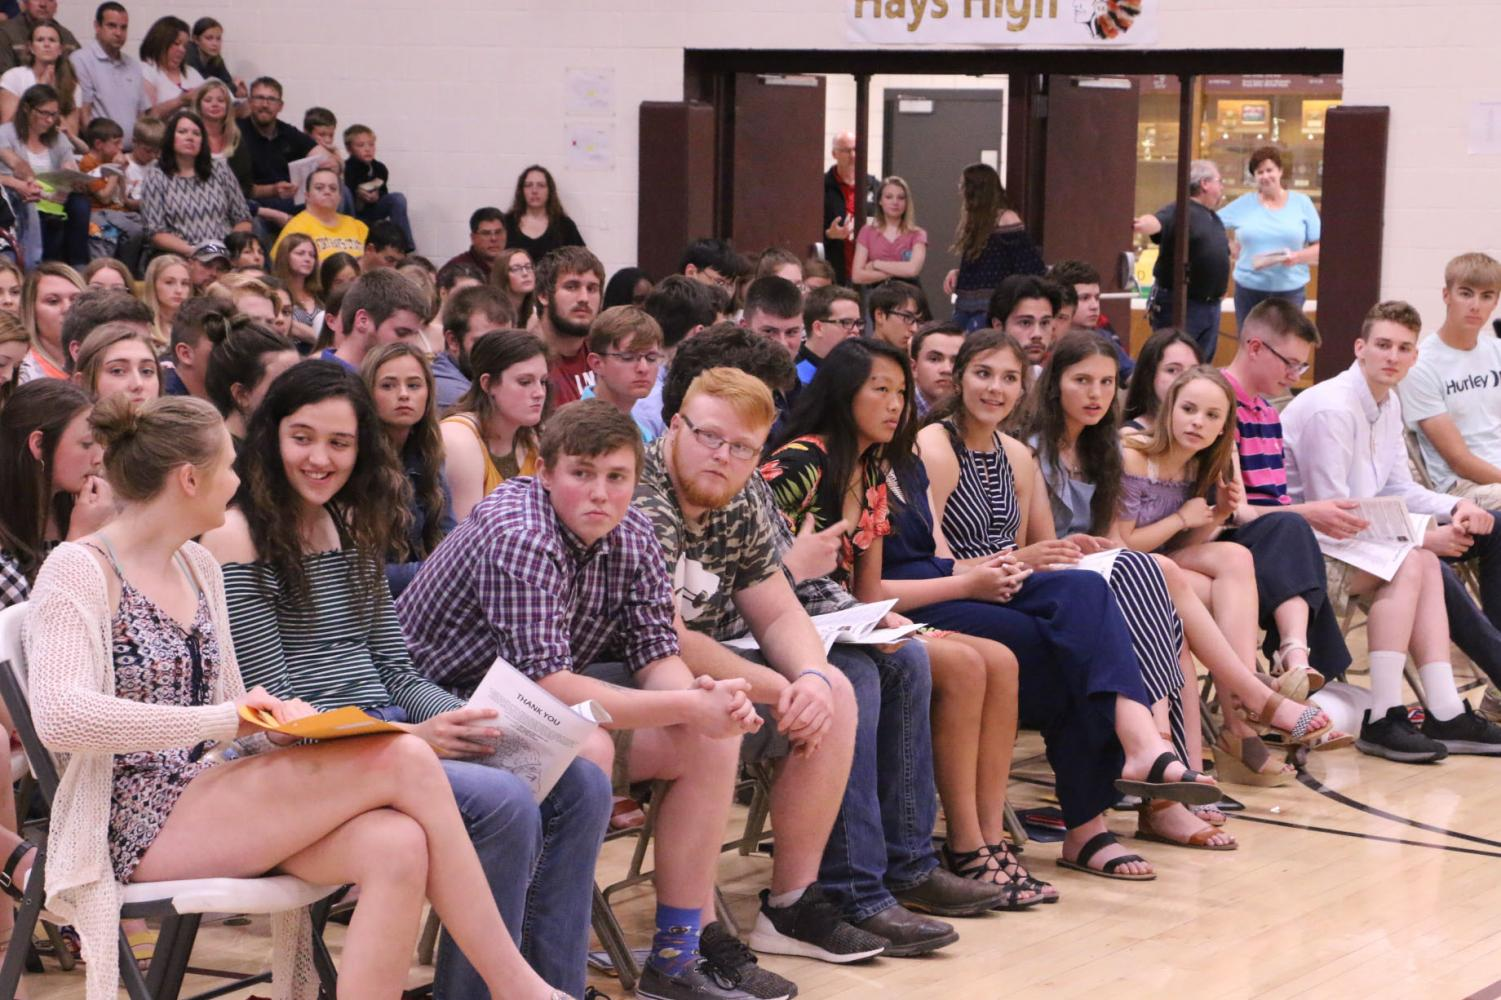 On May 6 at 6:30 pm in gym A students received and were recognized for scholarships, sports awards, academic achievements, etc.Students that came to awards night gave the announcer a card of their achievements, to be read off.